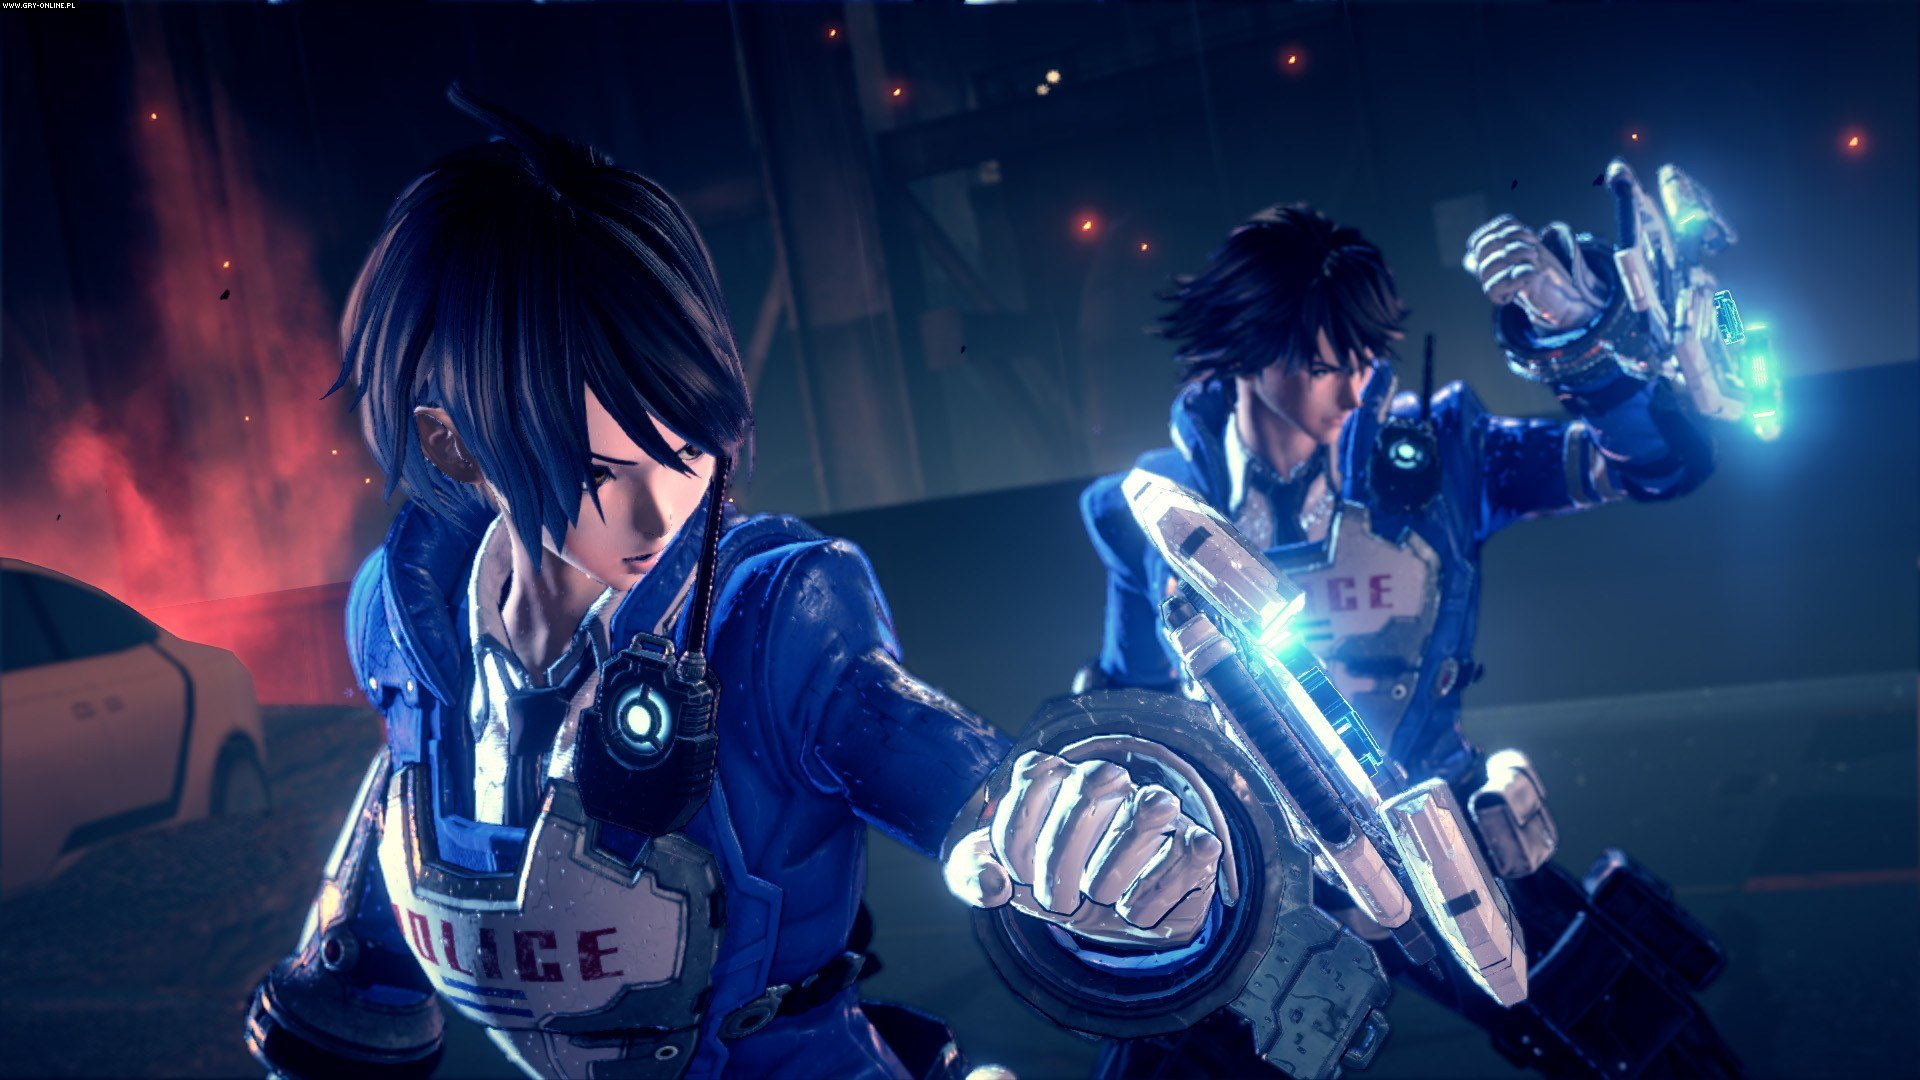 Astral Chain Switch Gry Screen 1/33, PlatinumGames, Nintendo